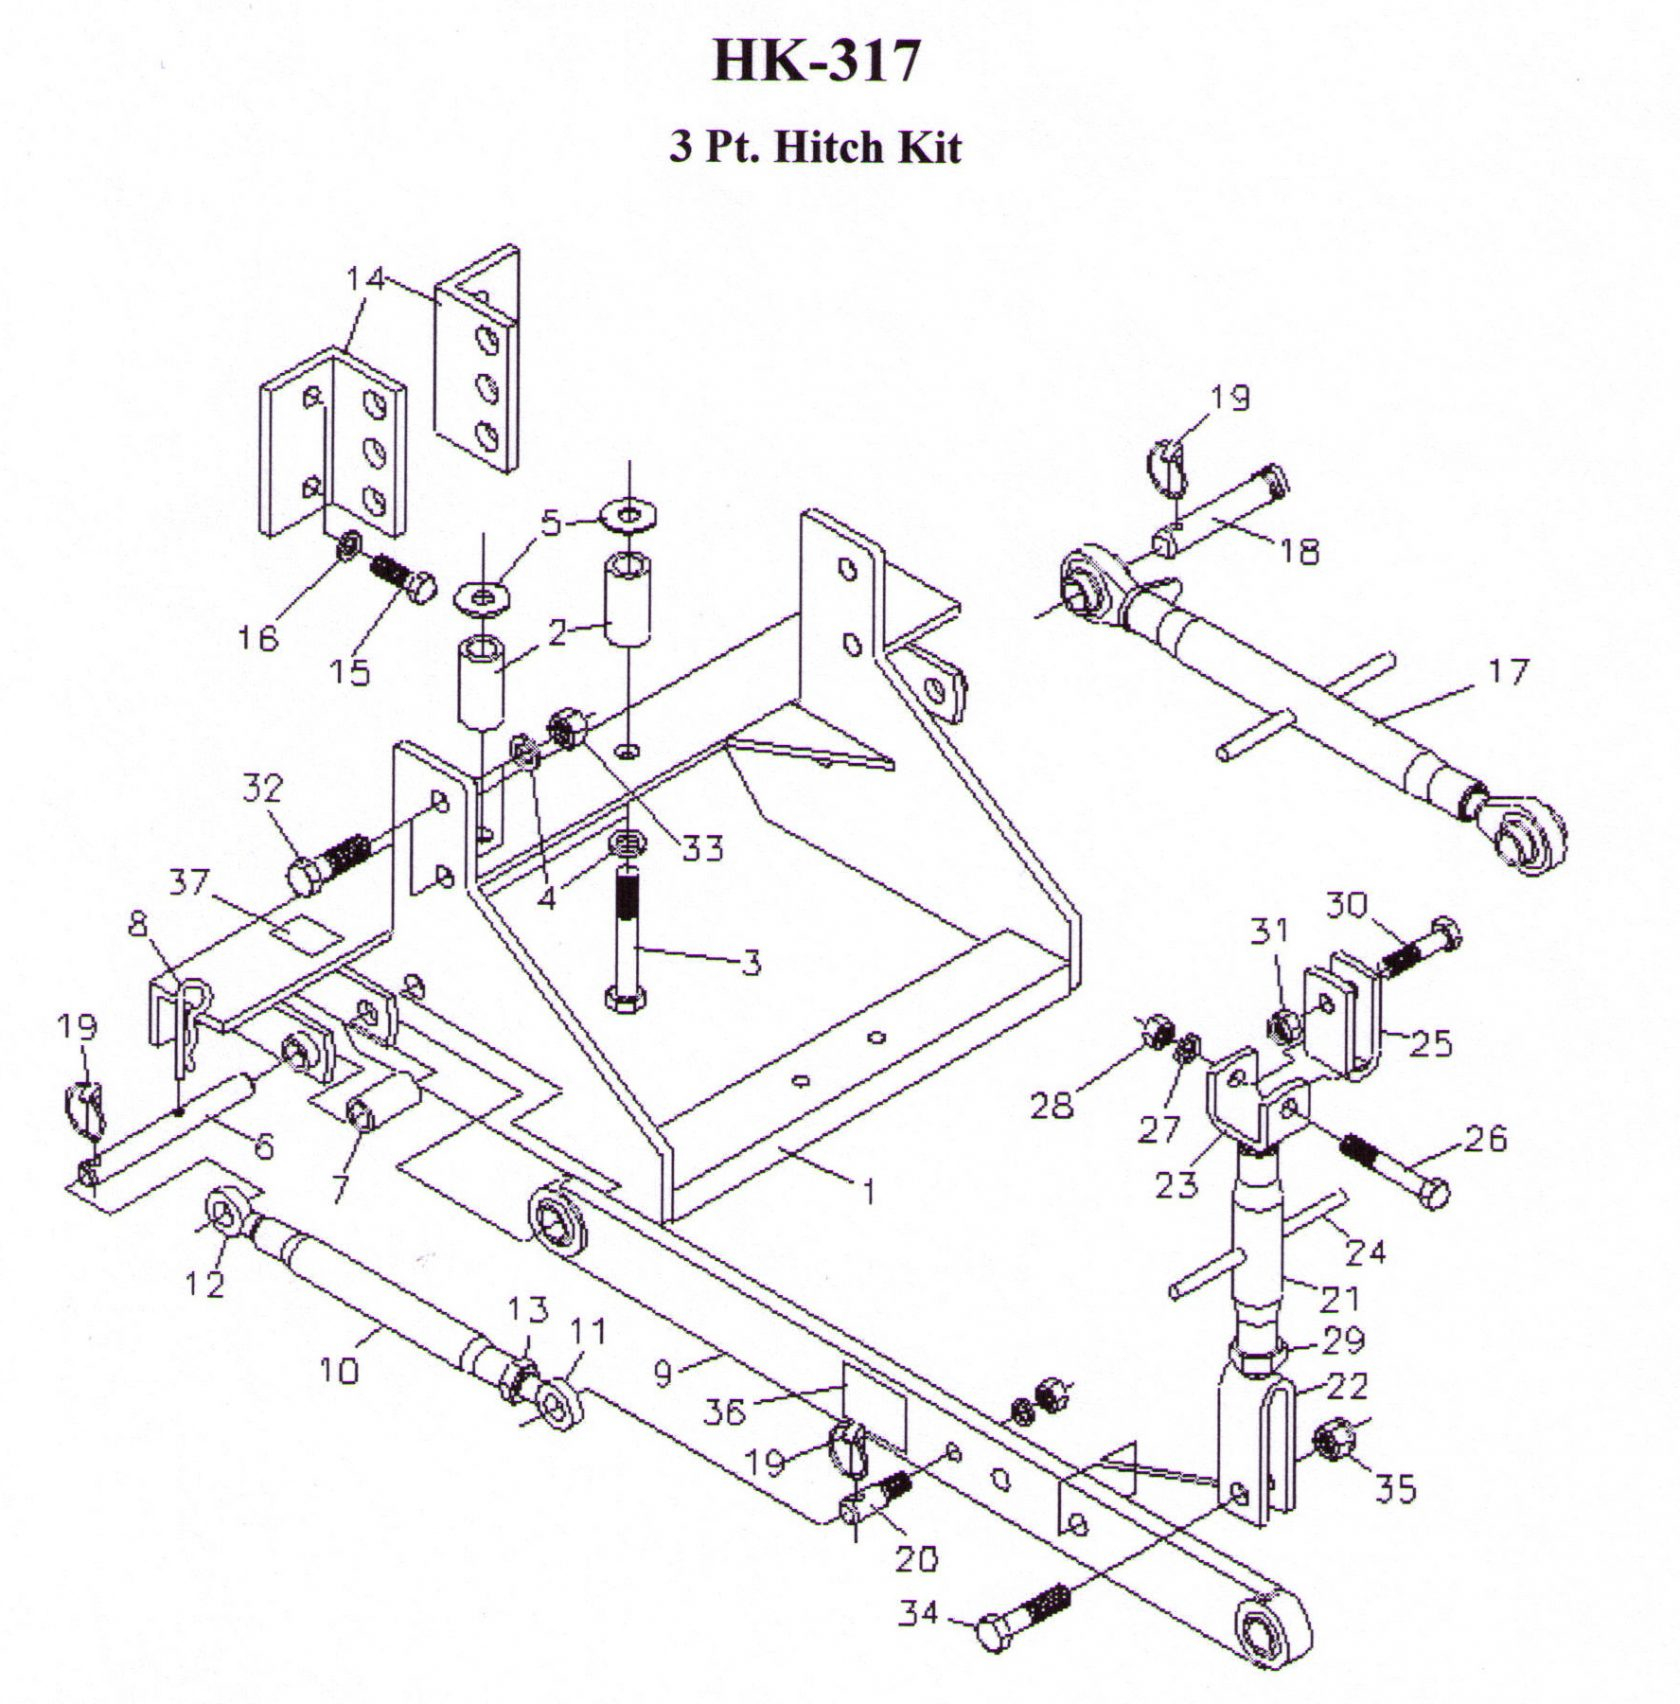 Wiring Diagram John Deere L100 Electrical Diagram John Deere Gator